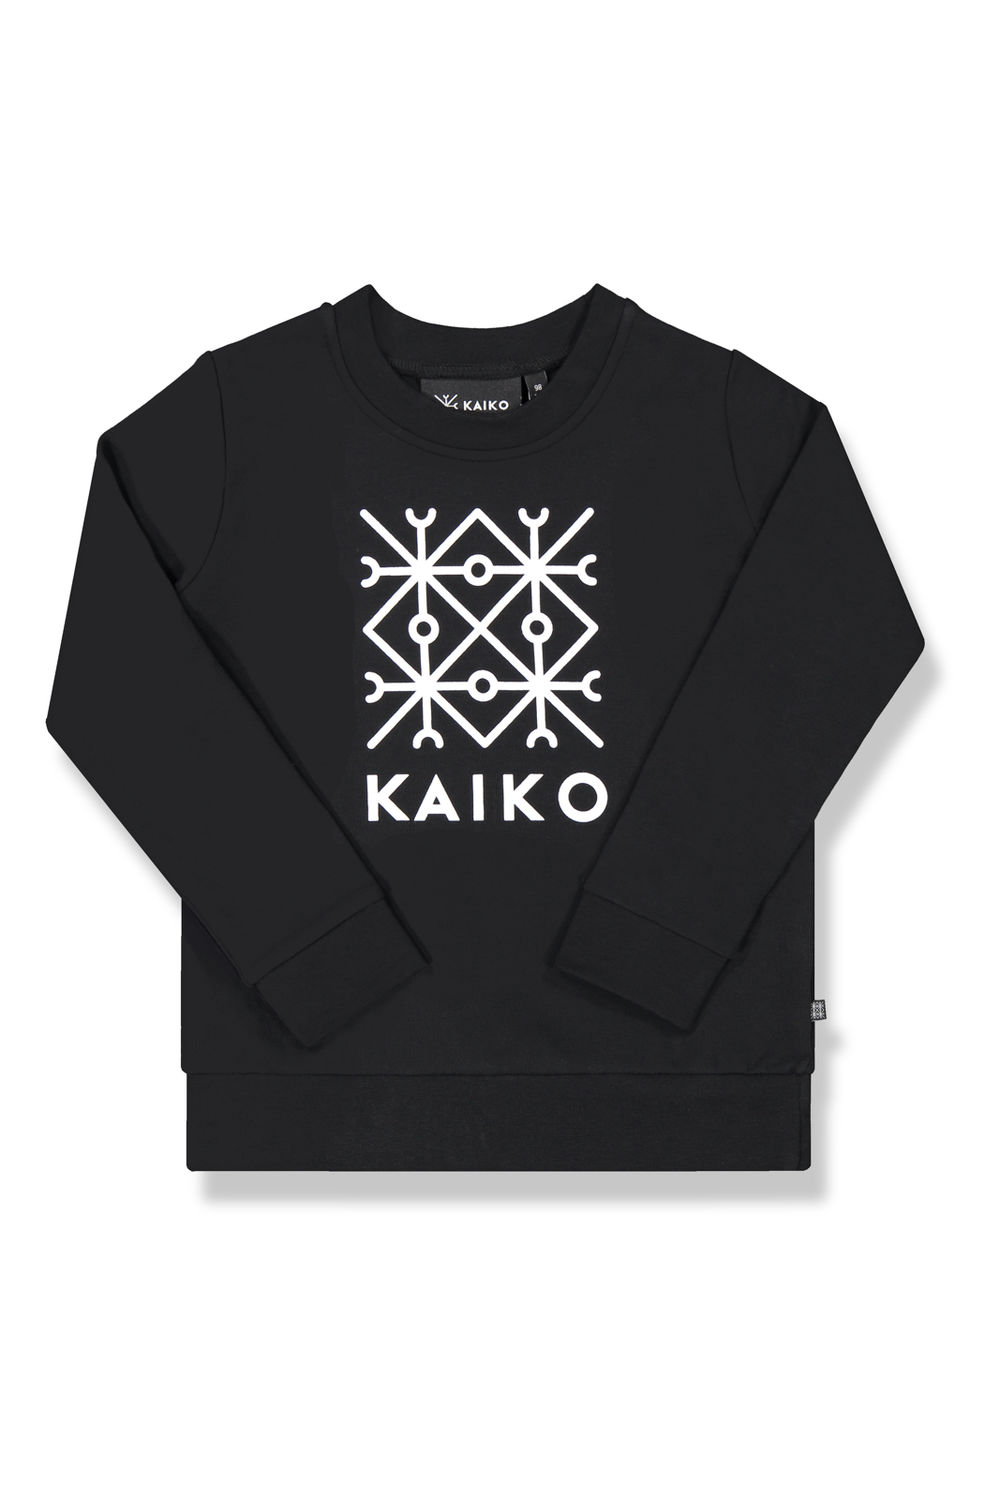 Kaiko Sweatshirt black